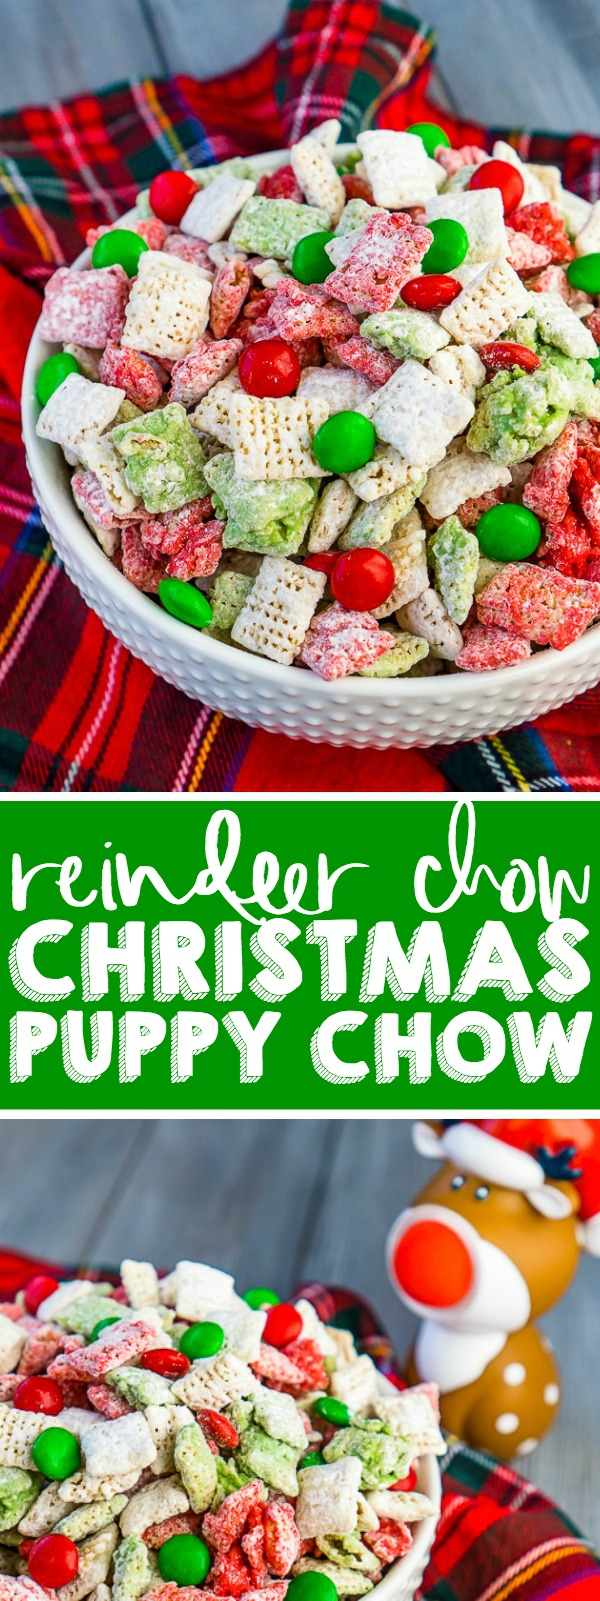 Forget the carrots! This holiday season, leave this Reindeer Chow {aka Christmas Puppy Chow} out on Christmas Eve instead of carrots! This holiday party mix recipe is filled with festive white, red, and green to celebrate the season!! Perfect for your Christmas parties or gift exchanges with neighbors and friends. | THE LOVE NERDS #muddybuddies